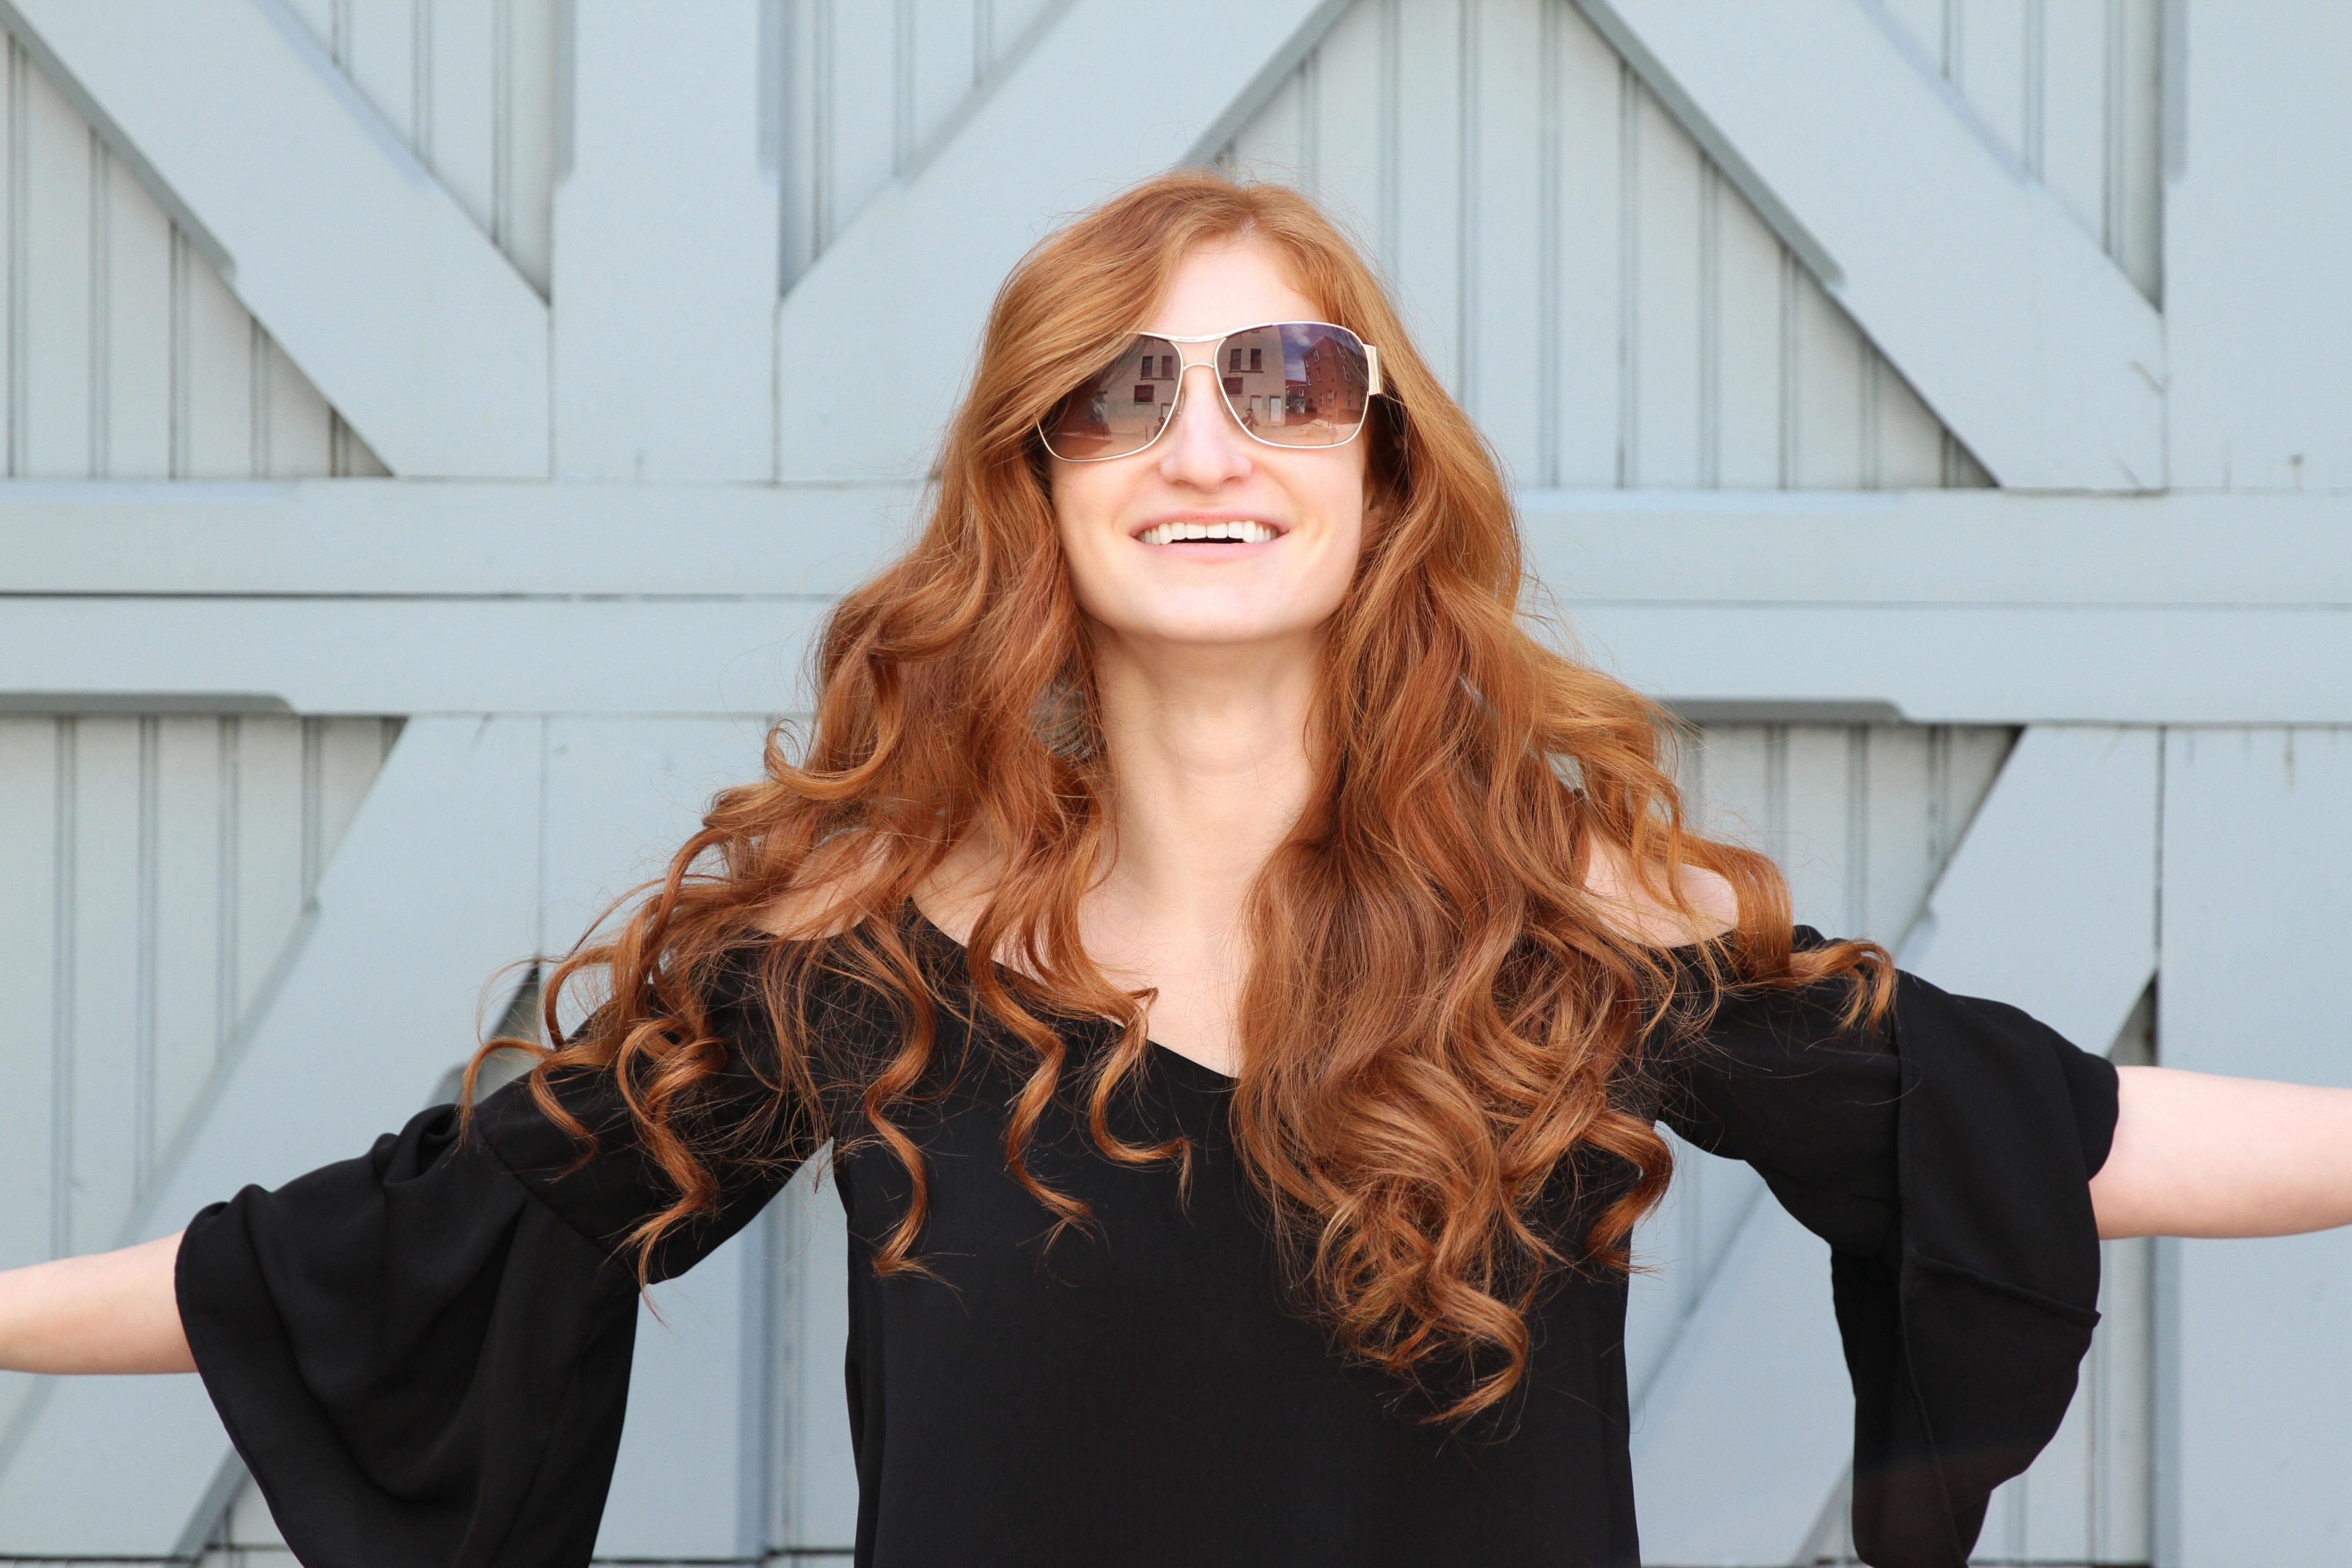 Erin Leigh She's Red Haute Redhead laid back in all black shirt with arms out